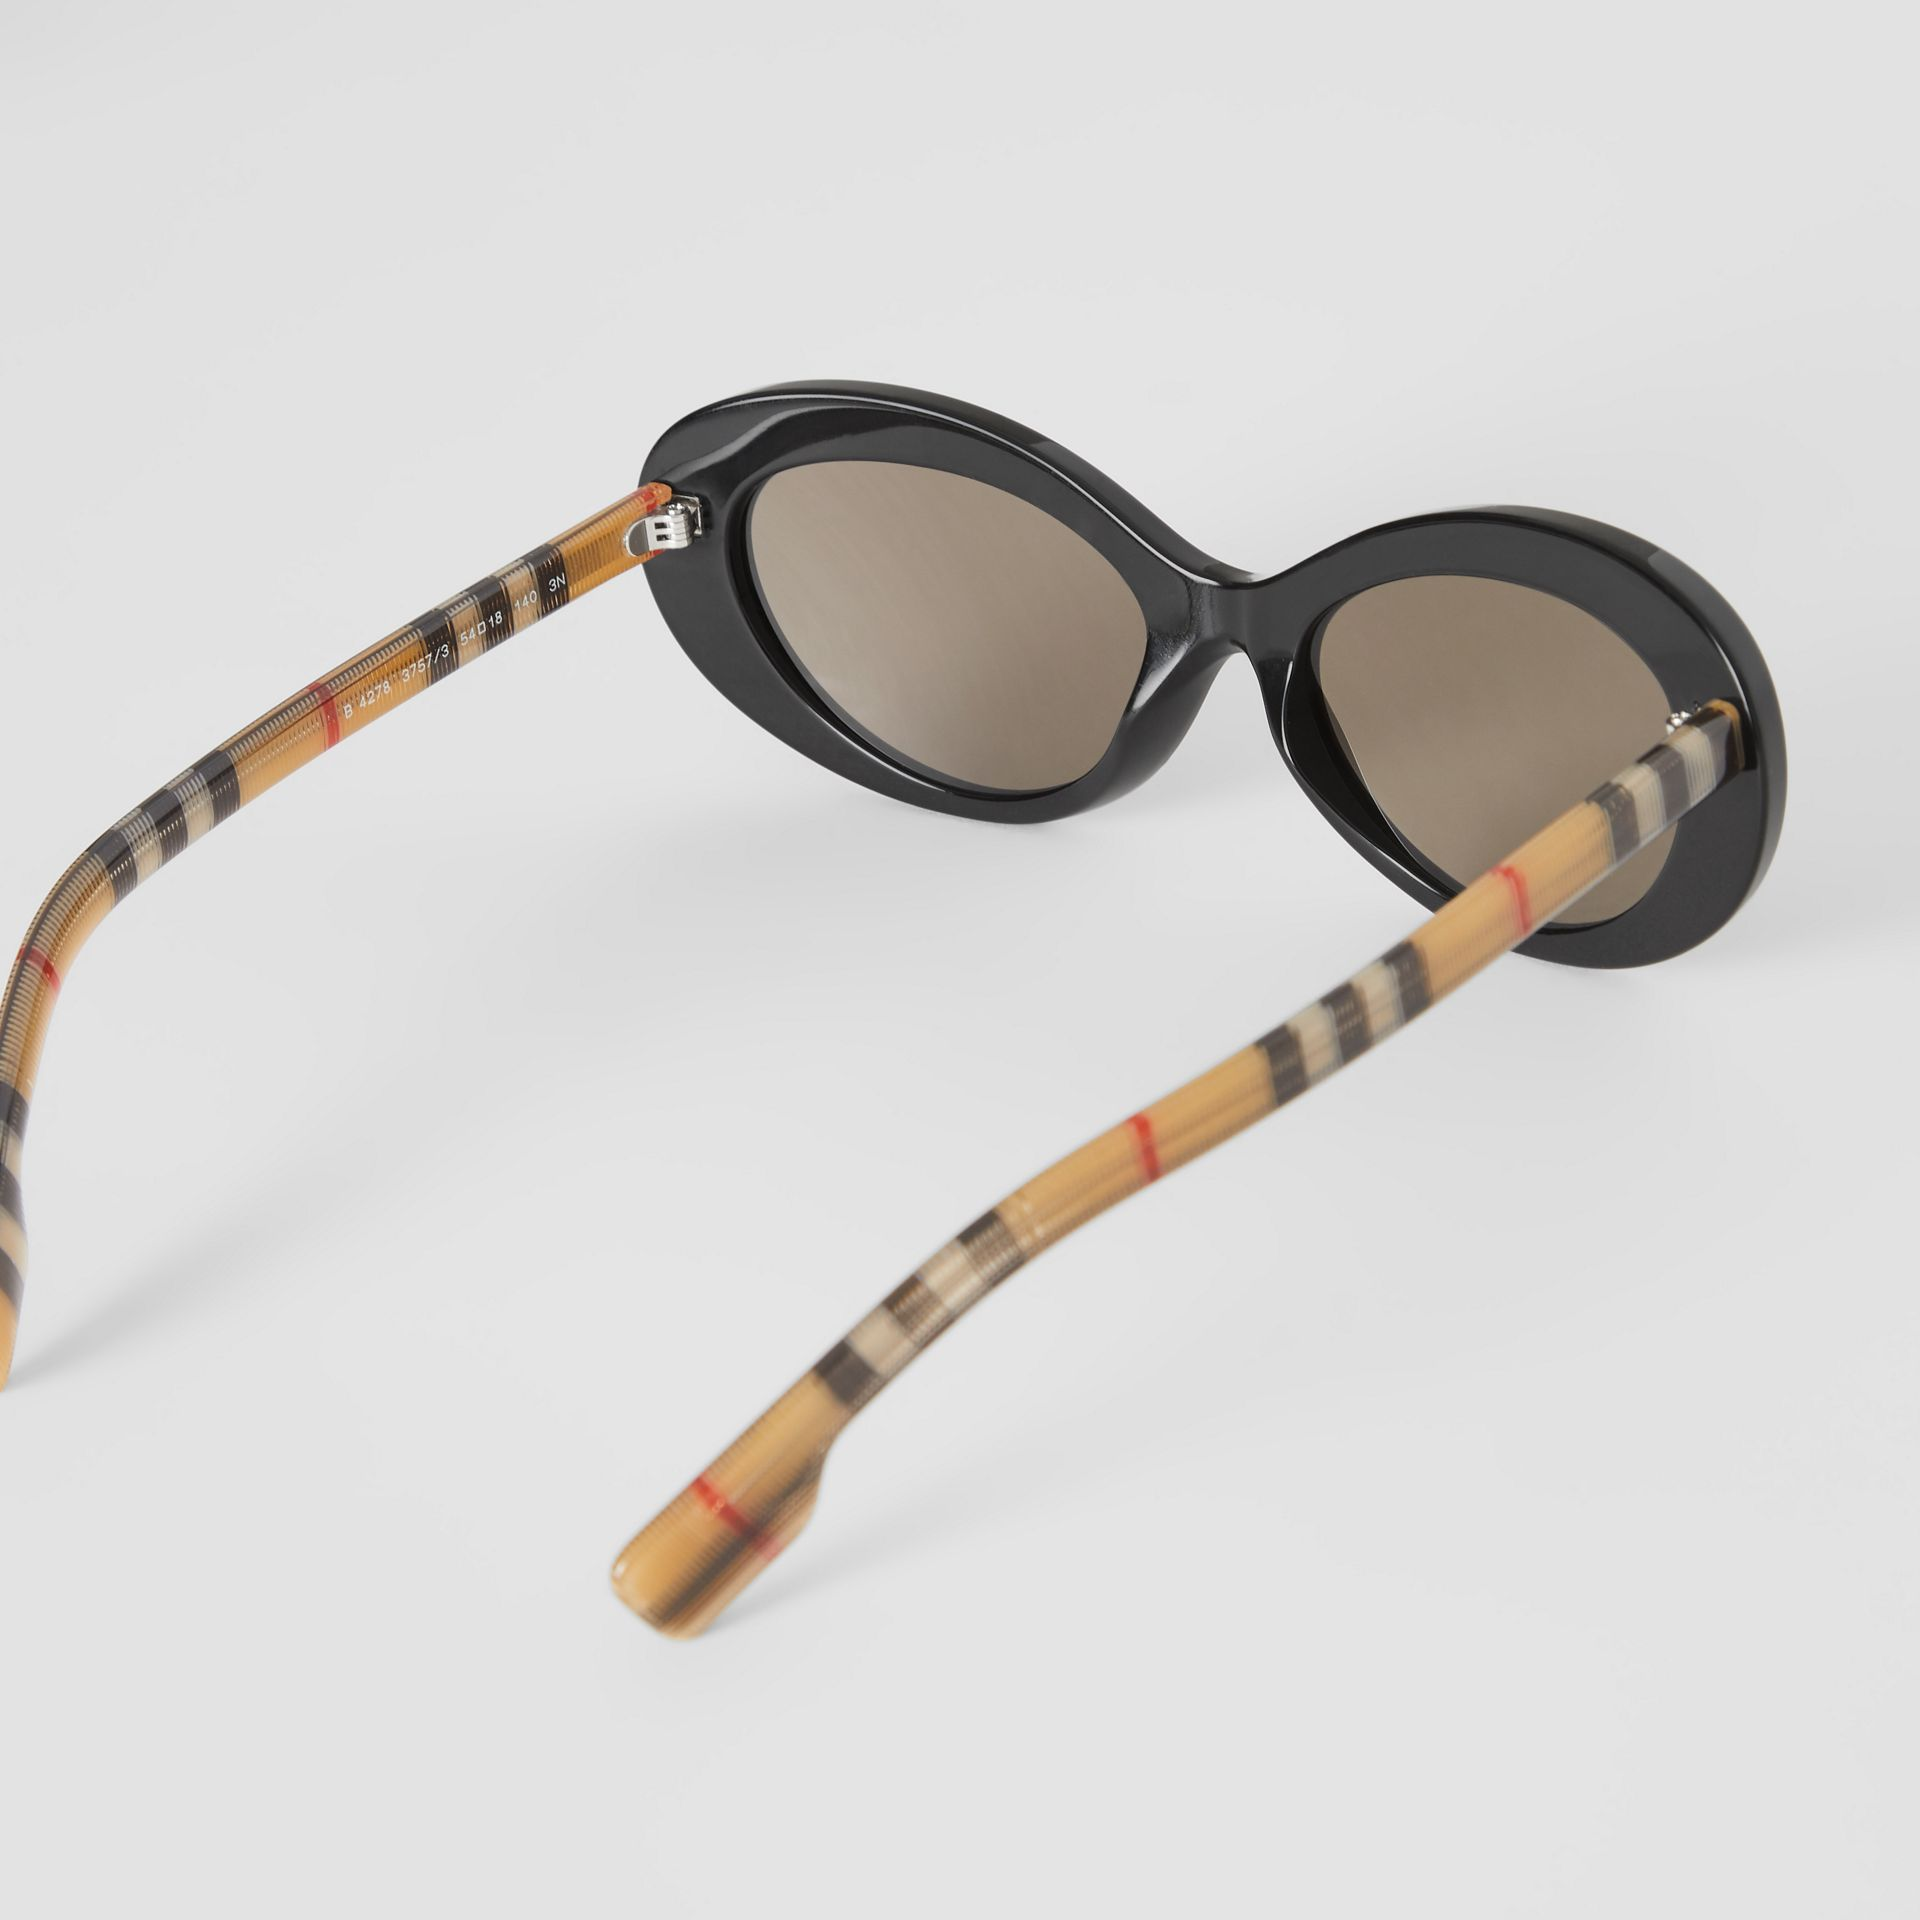 Vintage Check Detail Cat-eye Frame Sunglasses in Black - Women | Burberry - gallery image 4